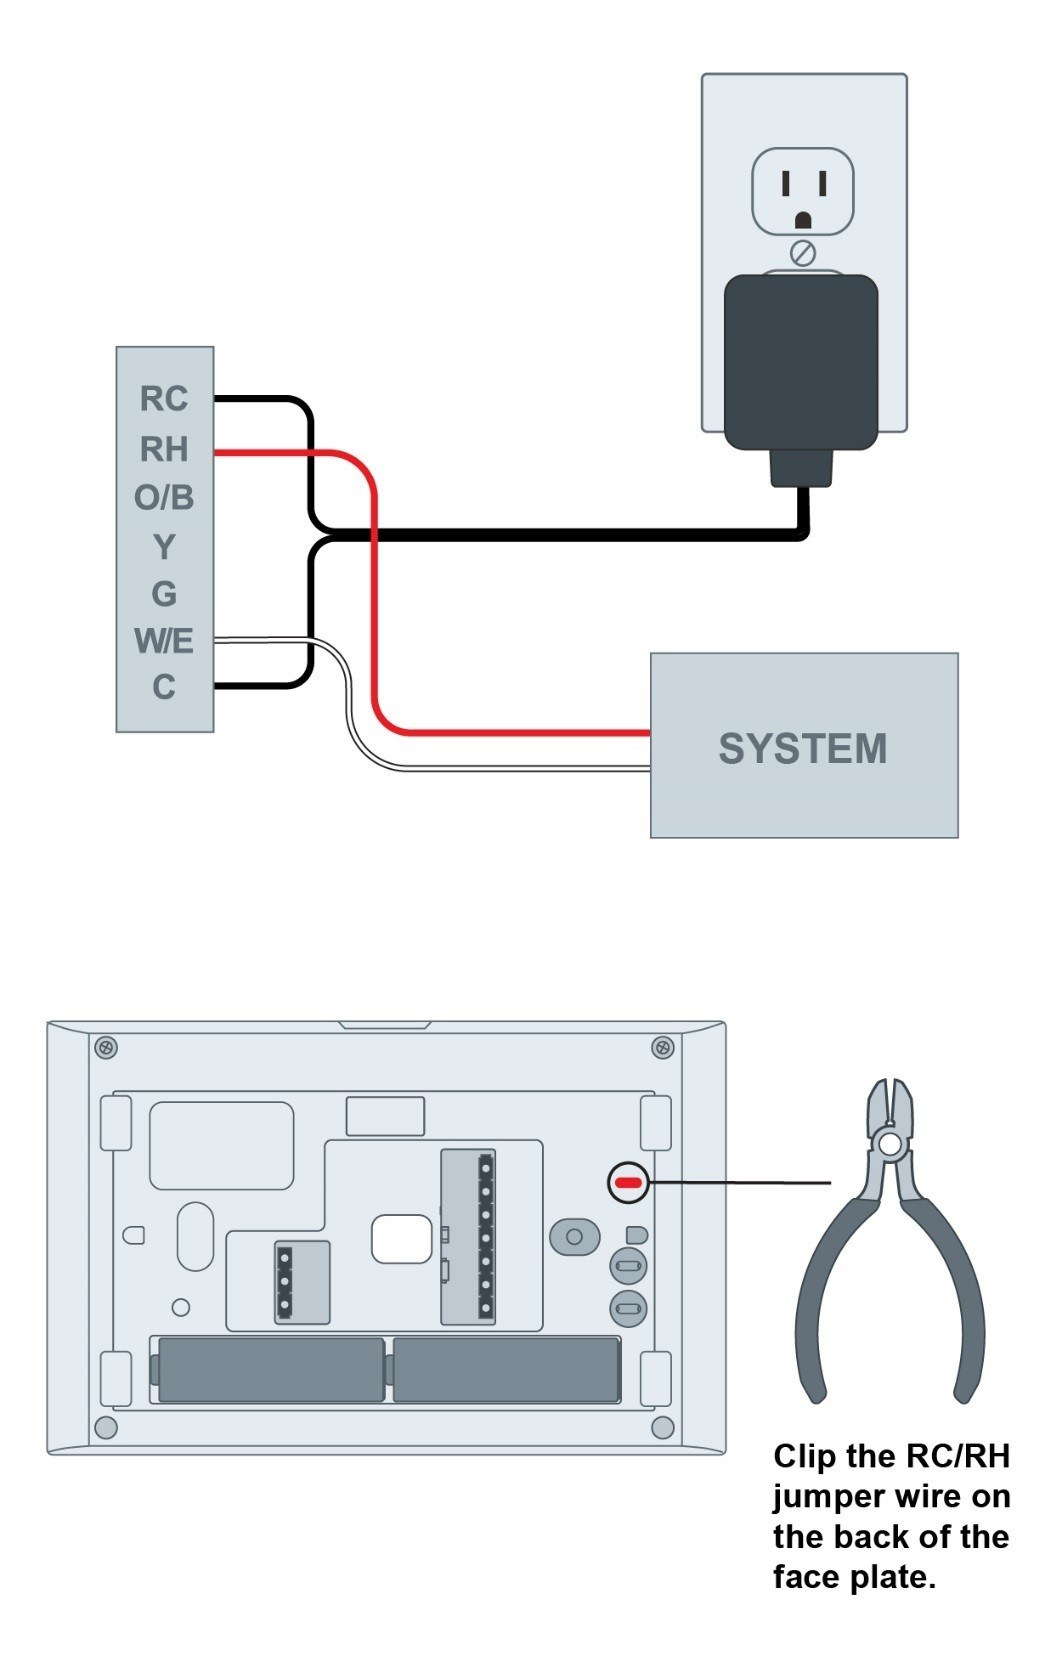 Adding A 24 Vac External Transformer: A Diy Option For Heat-Only - Replace Emerson Thermostat With Nest Wiring Diagram